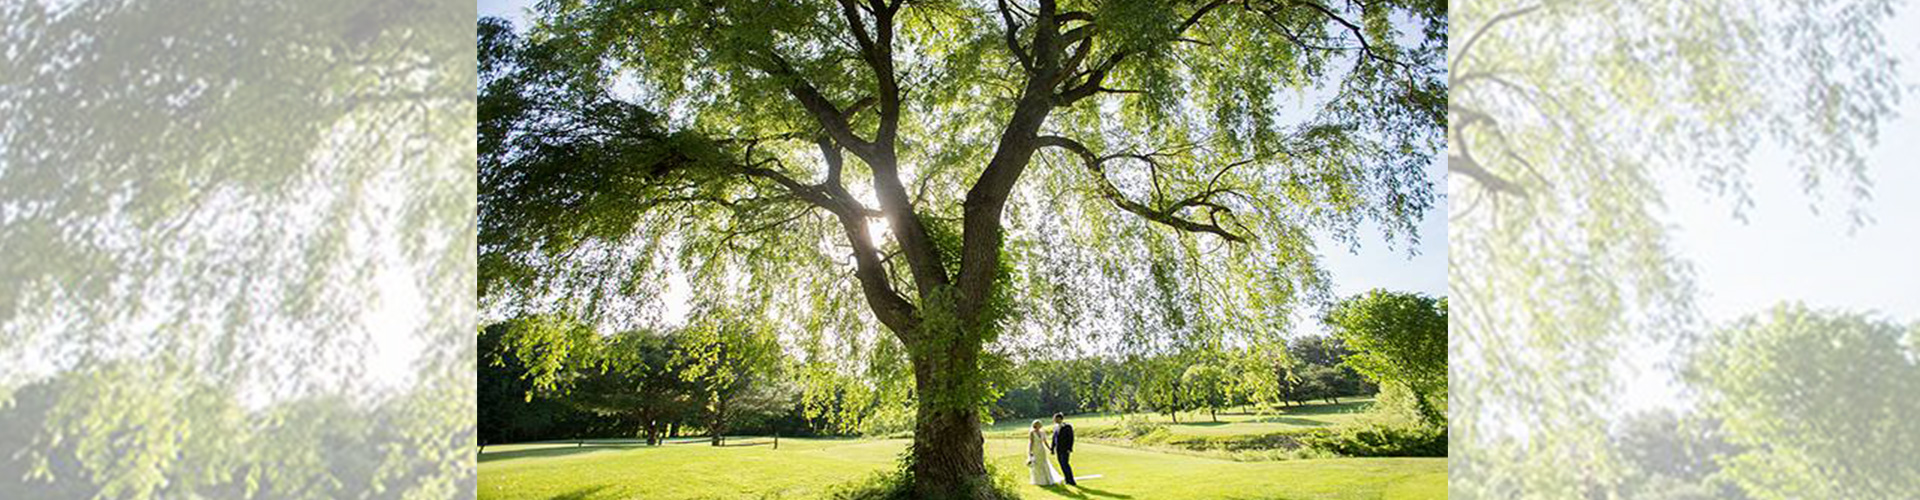 A newlywed couple stands under a tree on their wedding day at Butternut Farm Golf Club in Stow, Massachusetts